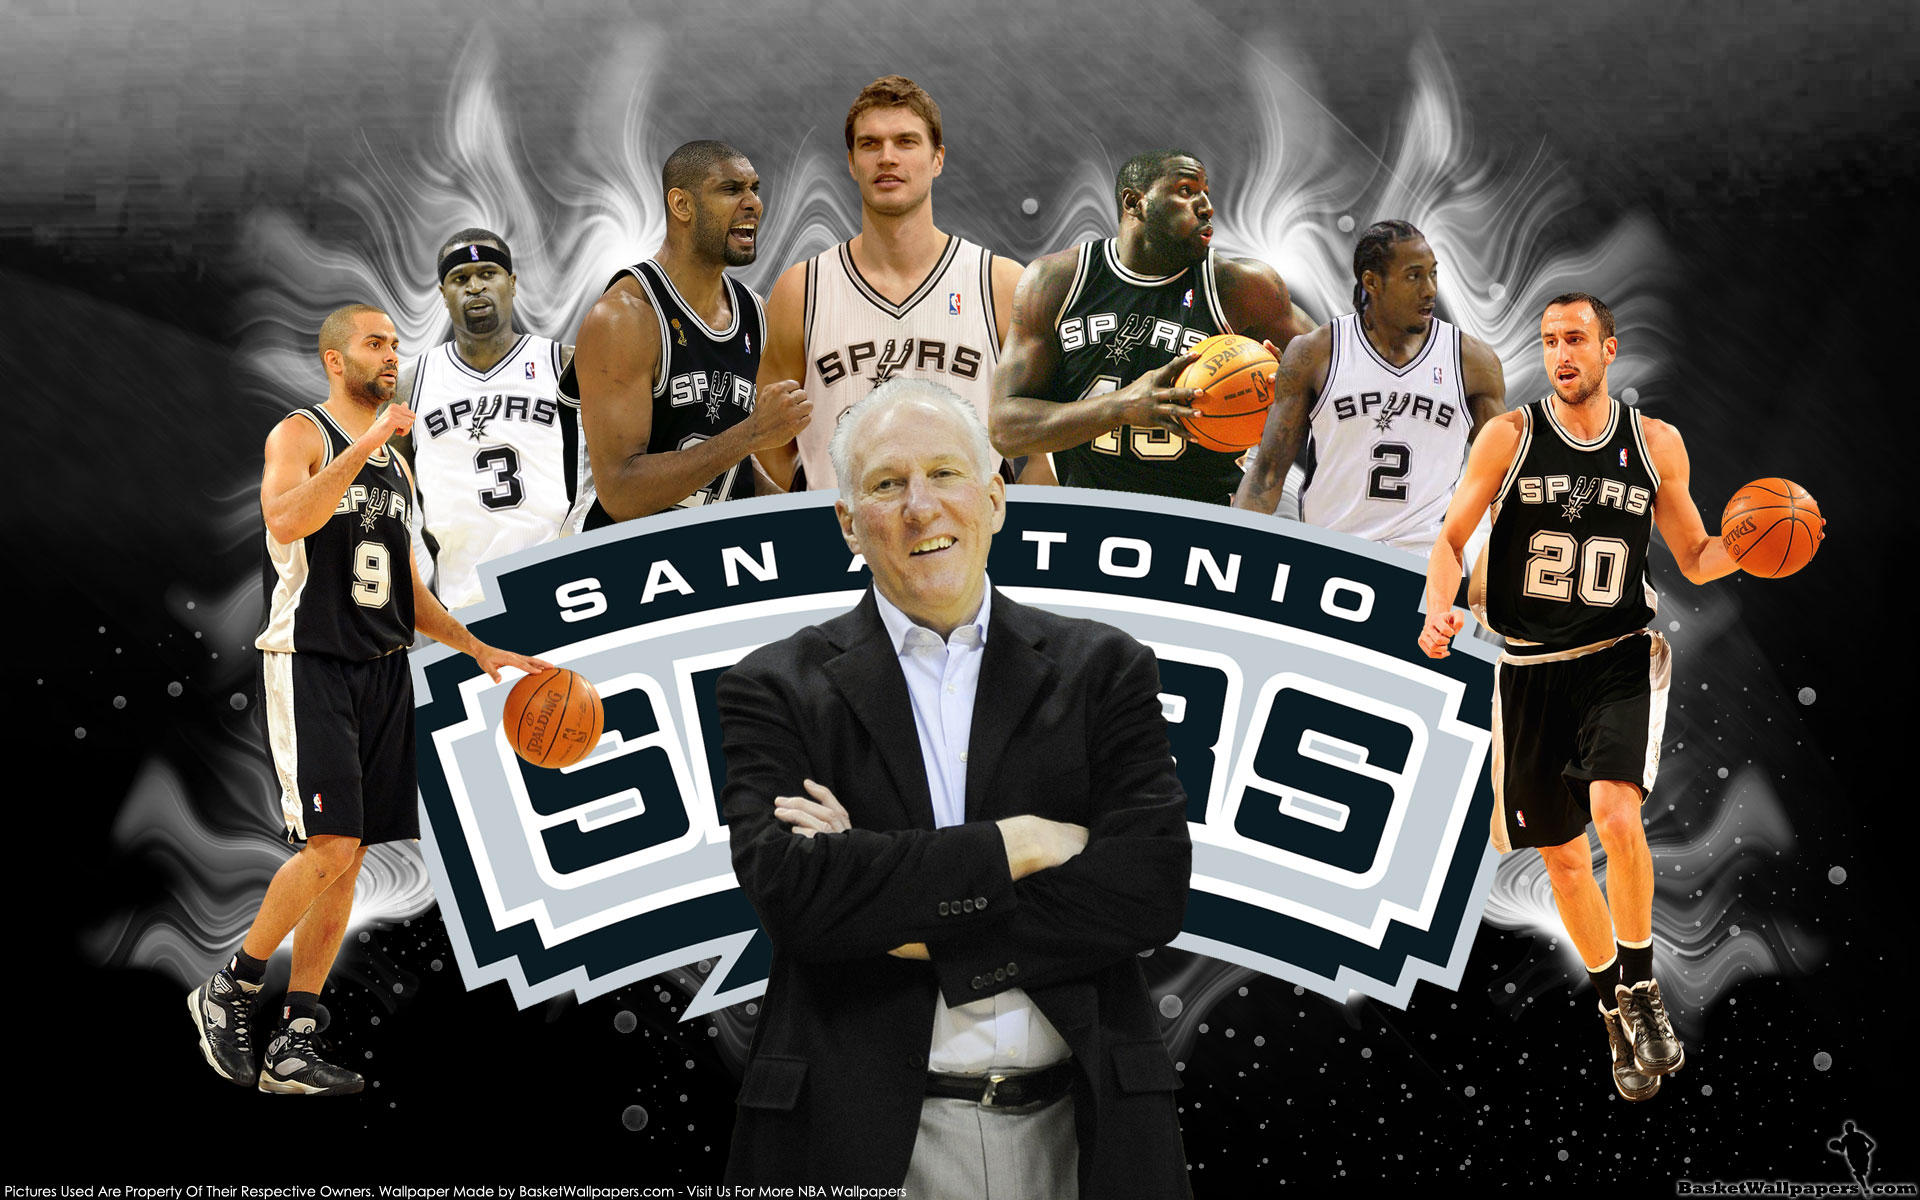 San Antonio Spurs 2013 1920x1200 Wallpaper